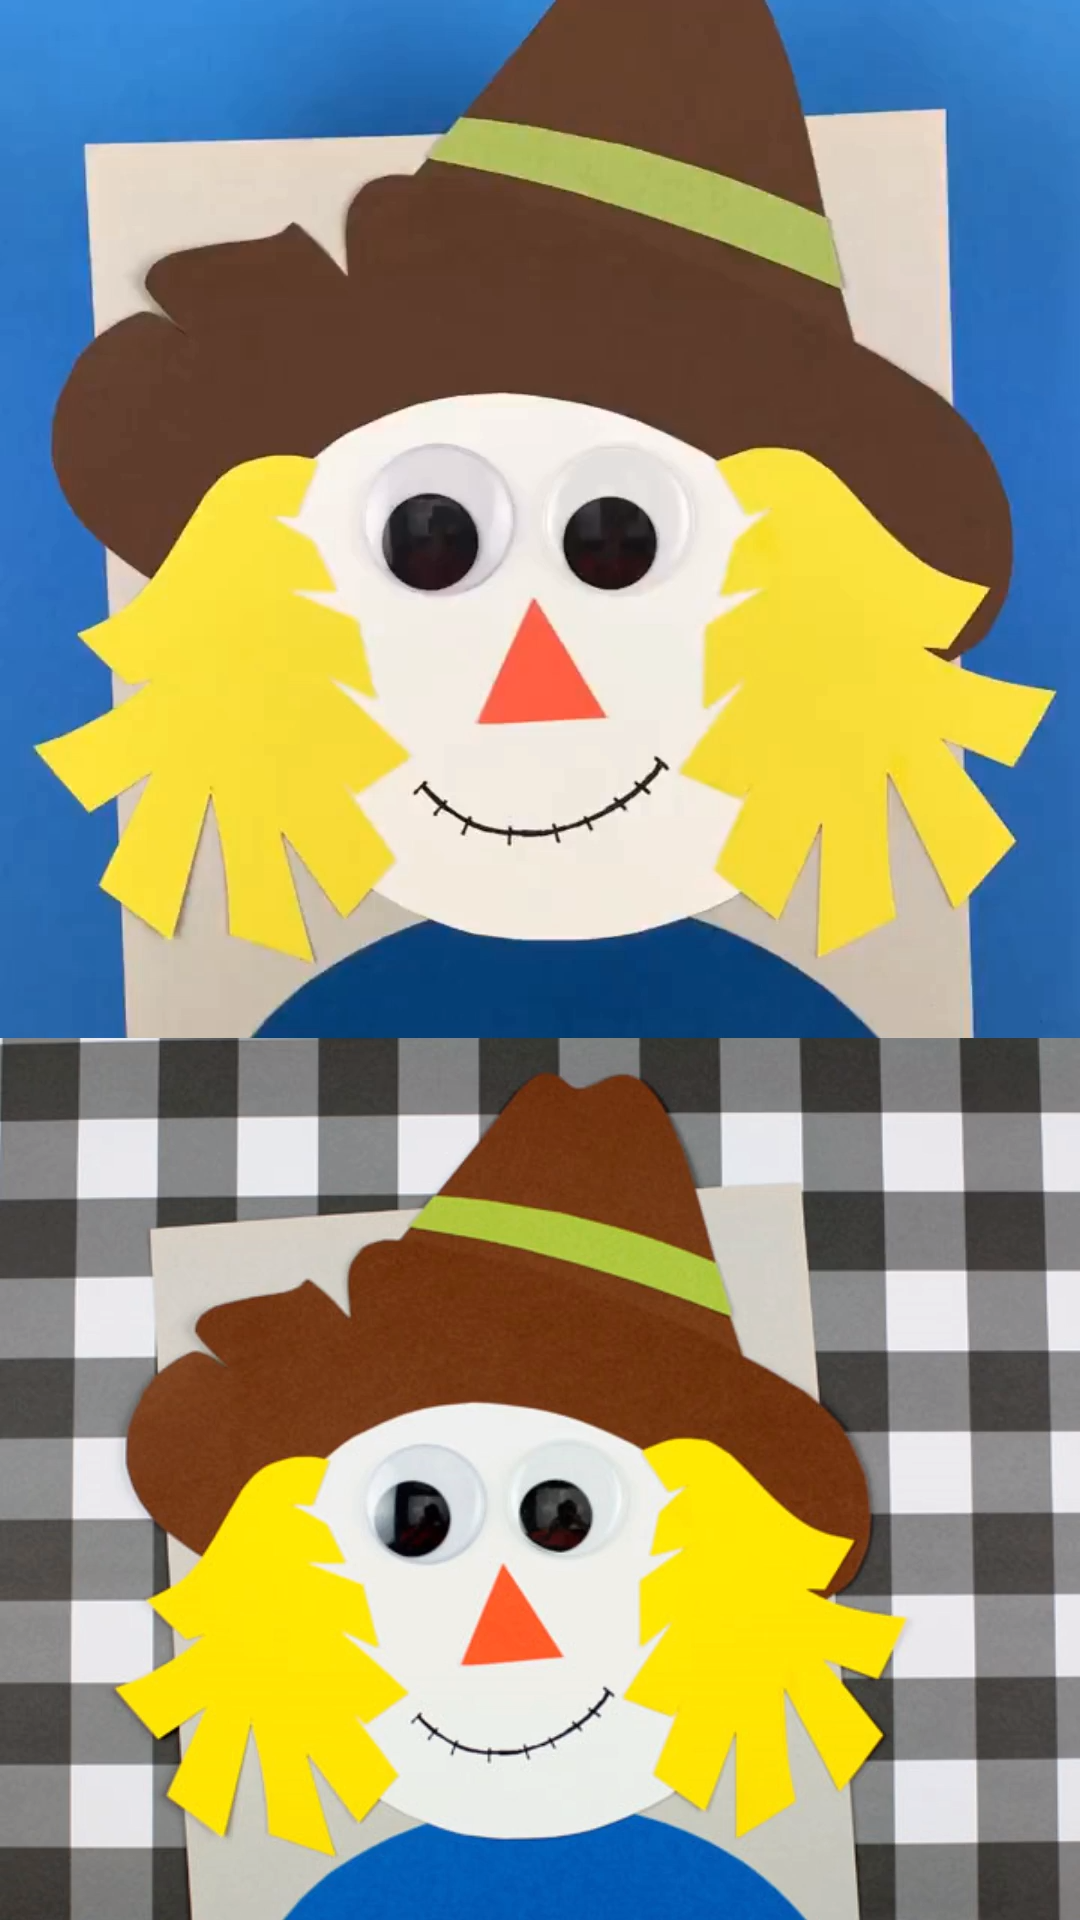 Scarecrow Paper Craft For Kids  Easy Fall Craft Idea - Scarecrow crafts, Fall crafts, Fall crafts for kids, Preschool crafts, Easy fall crafts, Easy preschool crafts - Make an easy scarecrow paper craft using the printable template  An easy fall craft idea for preschoolers and older kids